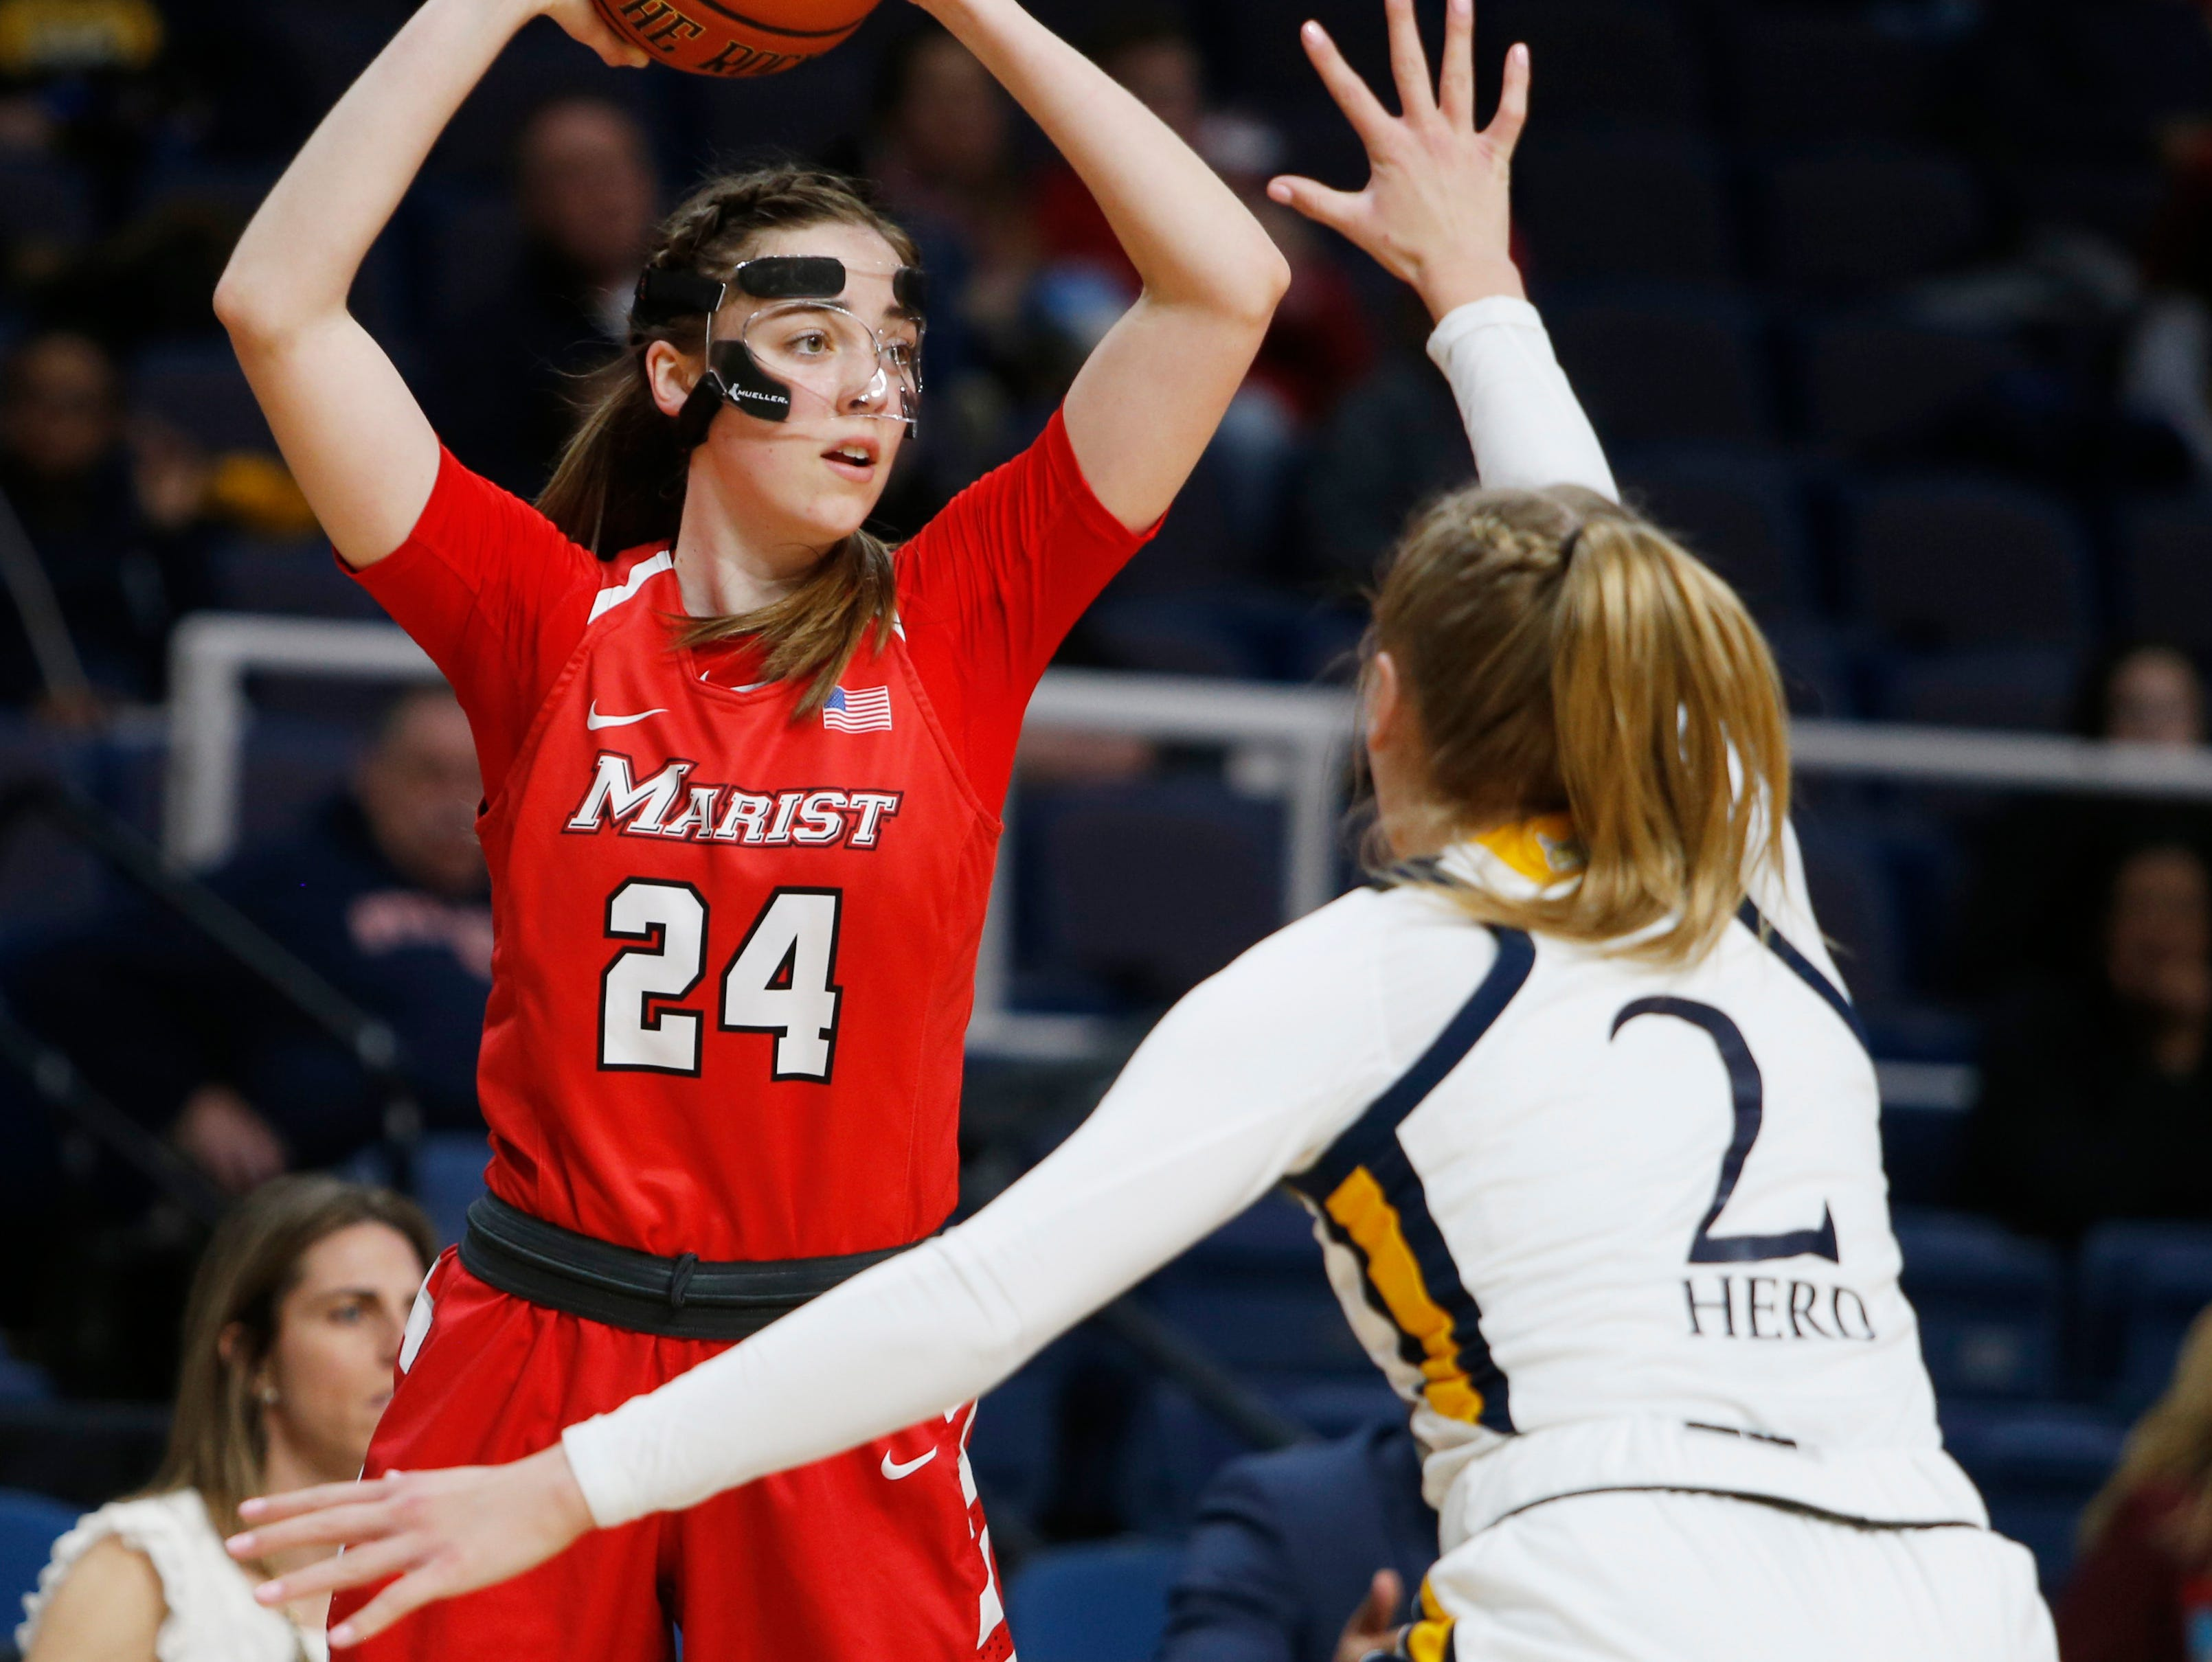 Marist's Sarah Barcello looks to pass the ball away from Quinnipiac's Taylor Herd during the MAAC championship in Albany on March 11 2019.